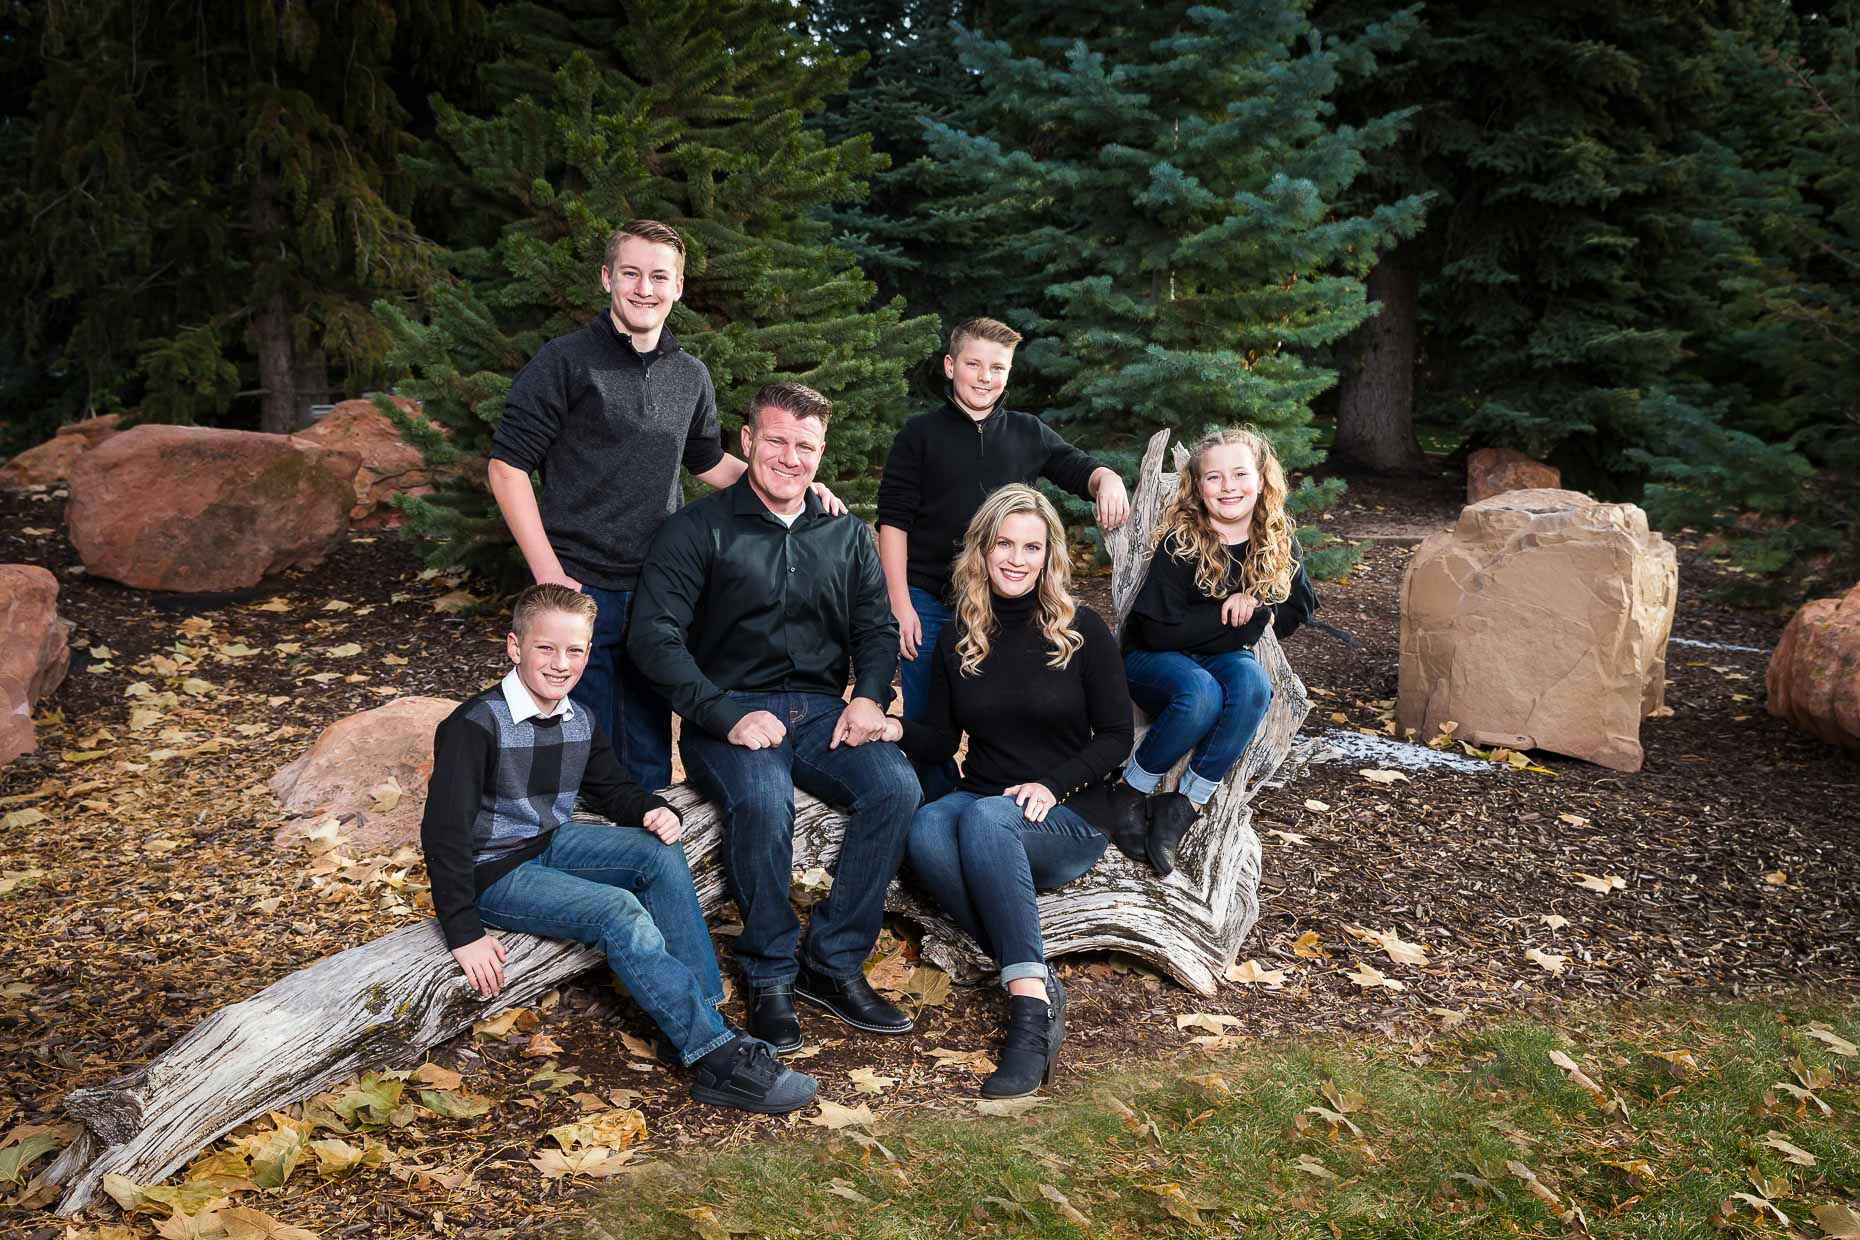 Steve Sheri Brown Family SUU campus Image by Rick Thompson Photography